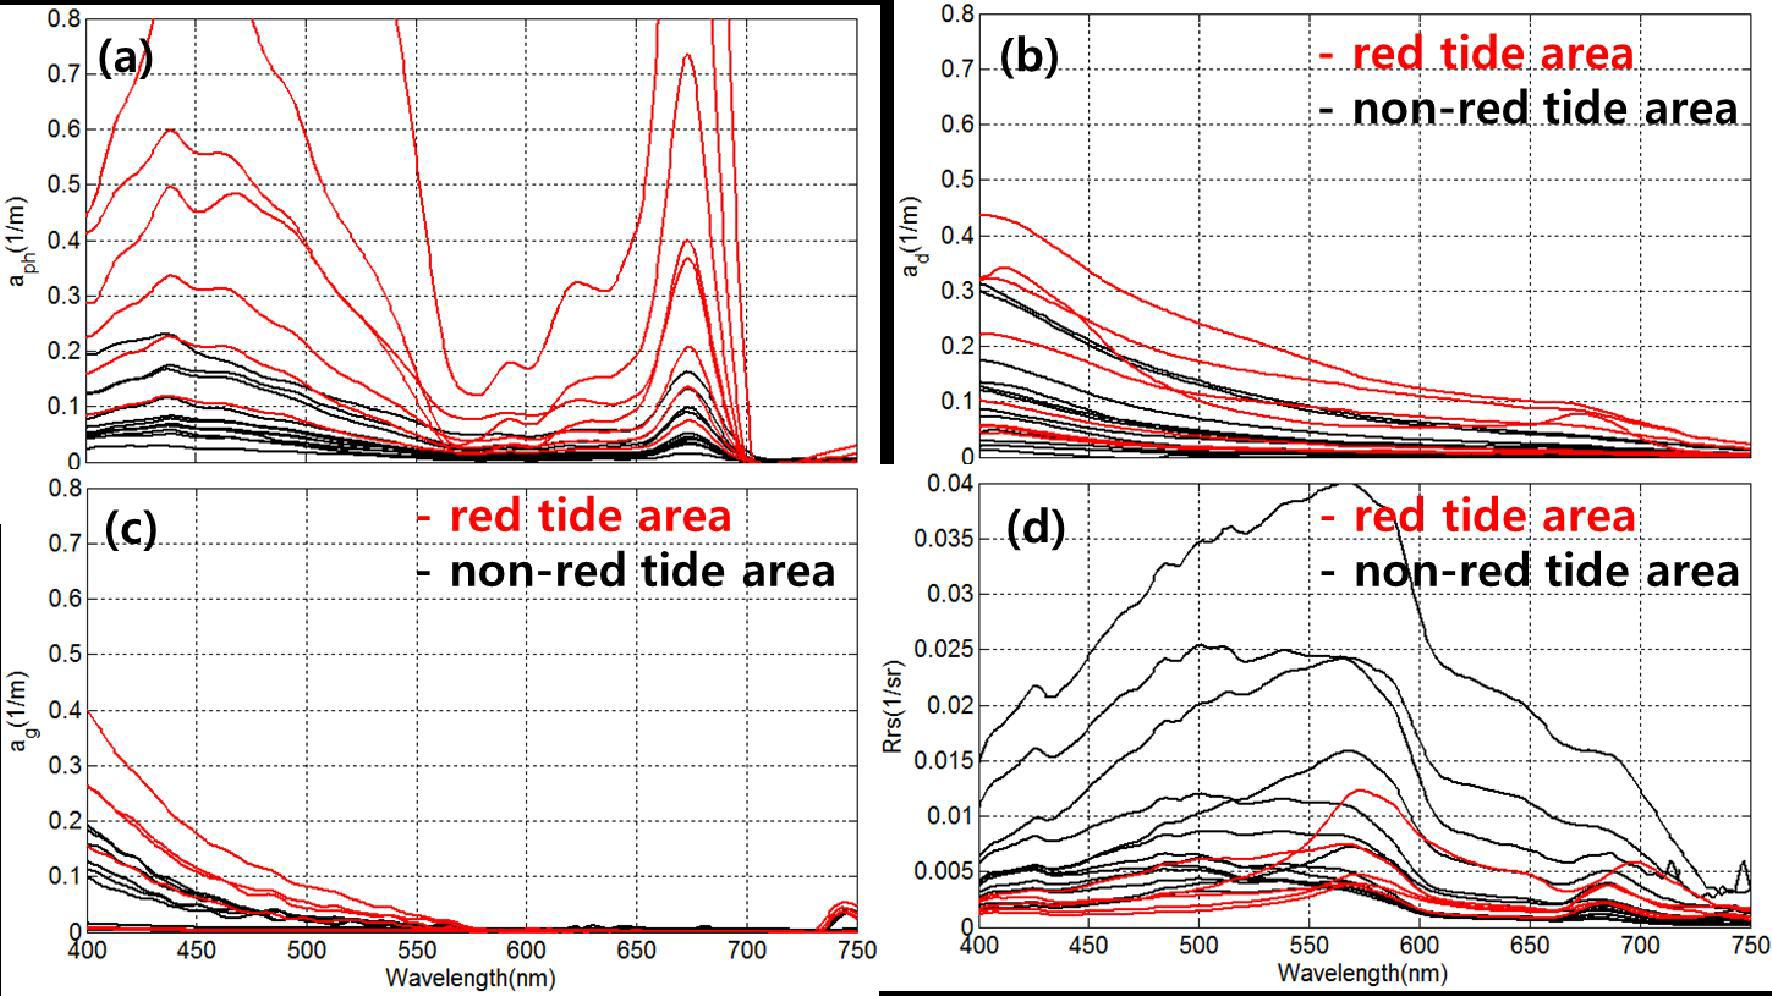 Absorption and reflectance characteristics of red tide and non-red tide water during 2014 and 2015 red tide hydrography cruises.